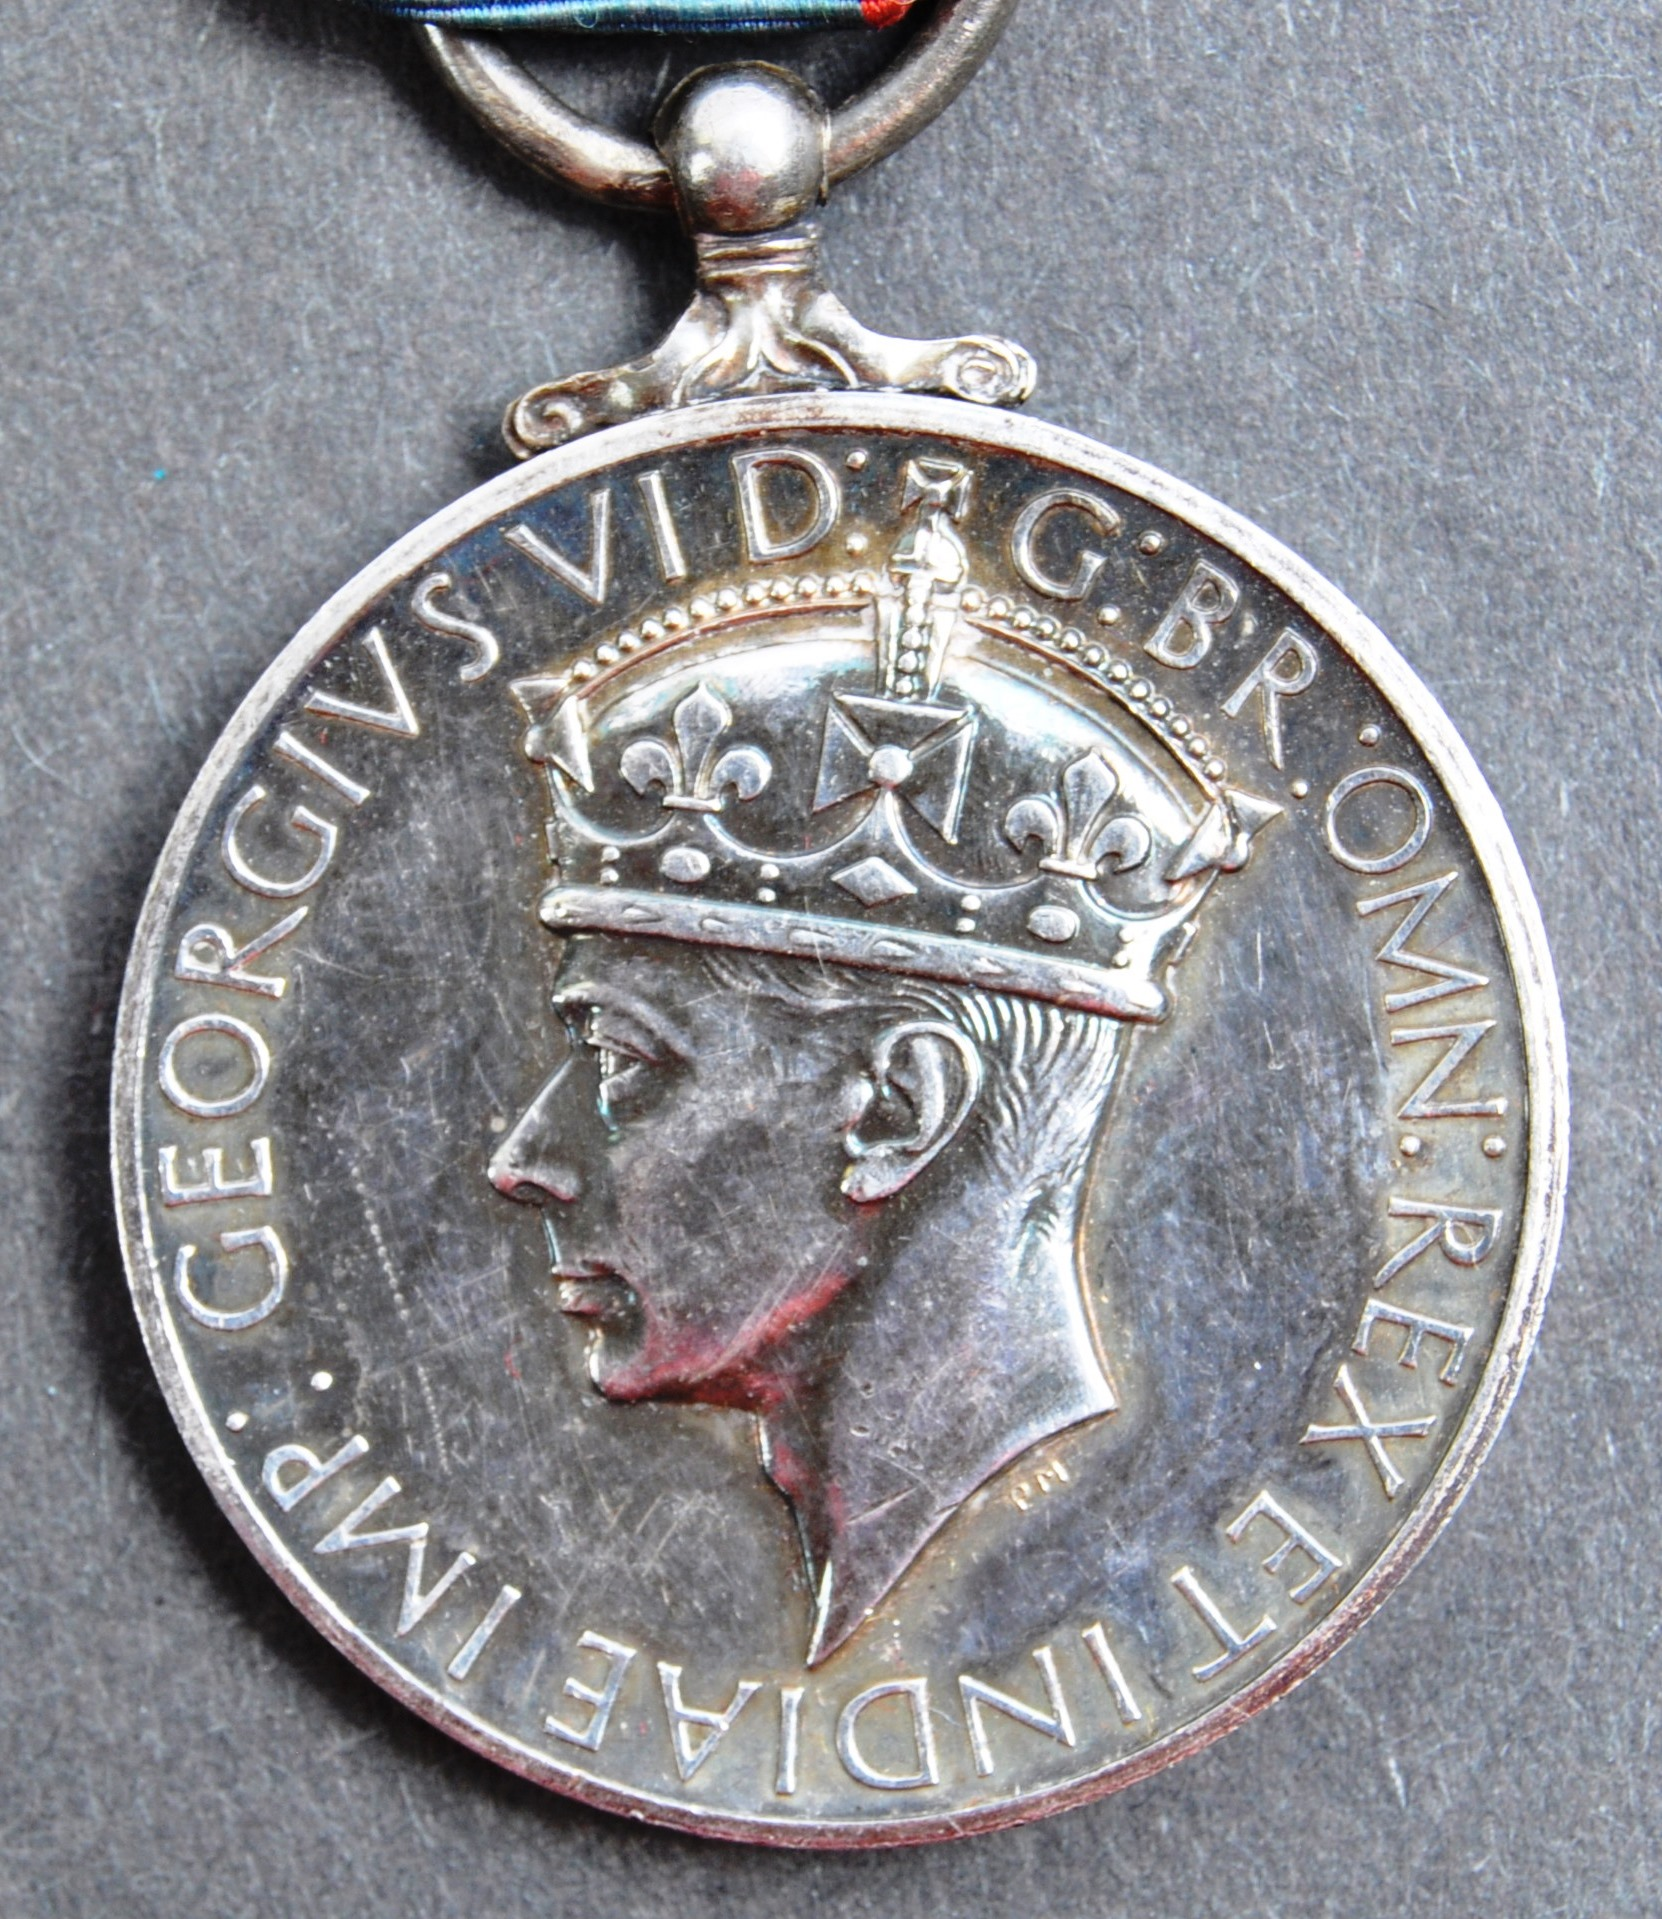 WWI FIRST WORLD WAR MEDAL GROUP - LEADING SEAMAN ROYAL NAVY - Image 4 of 10